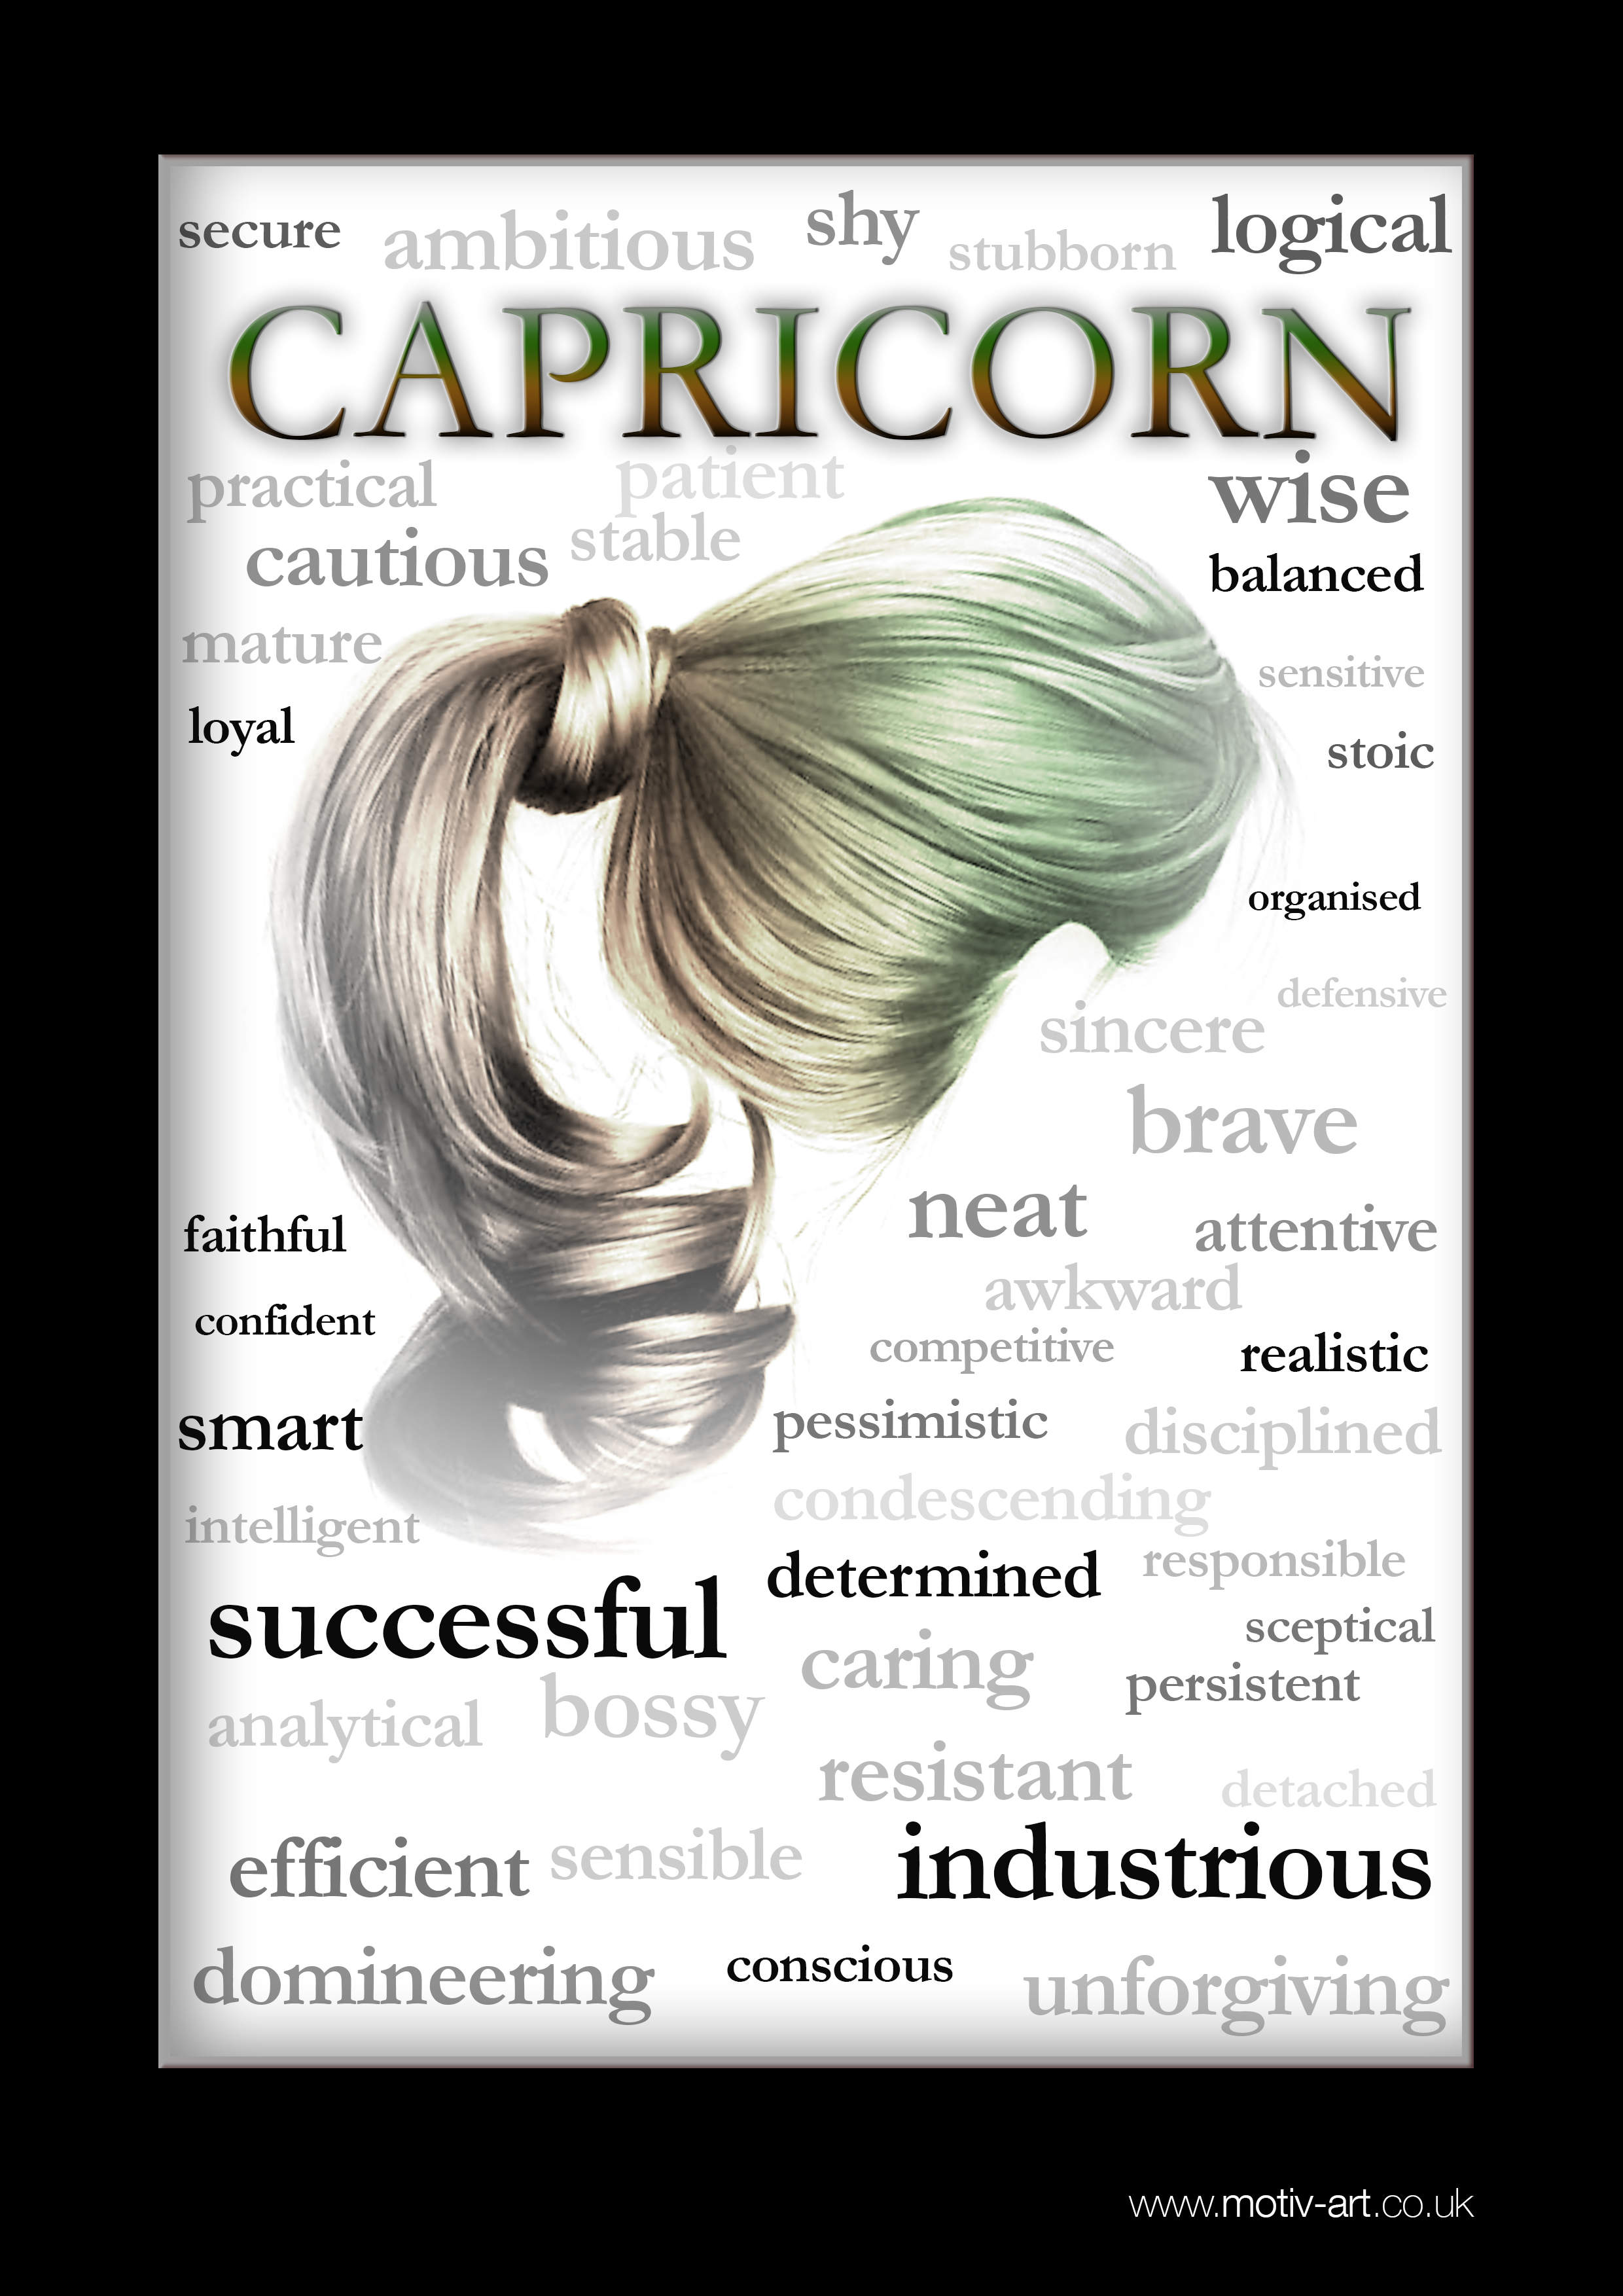 Capricorn - 23 Dec - 20 Jan